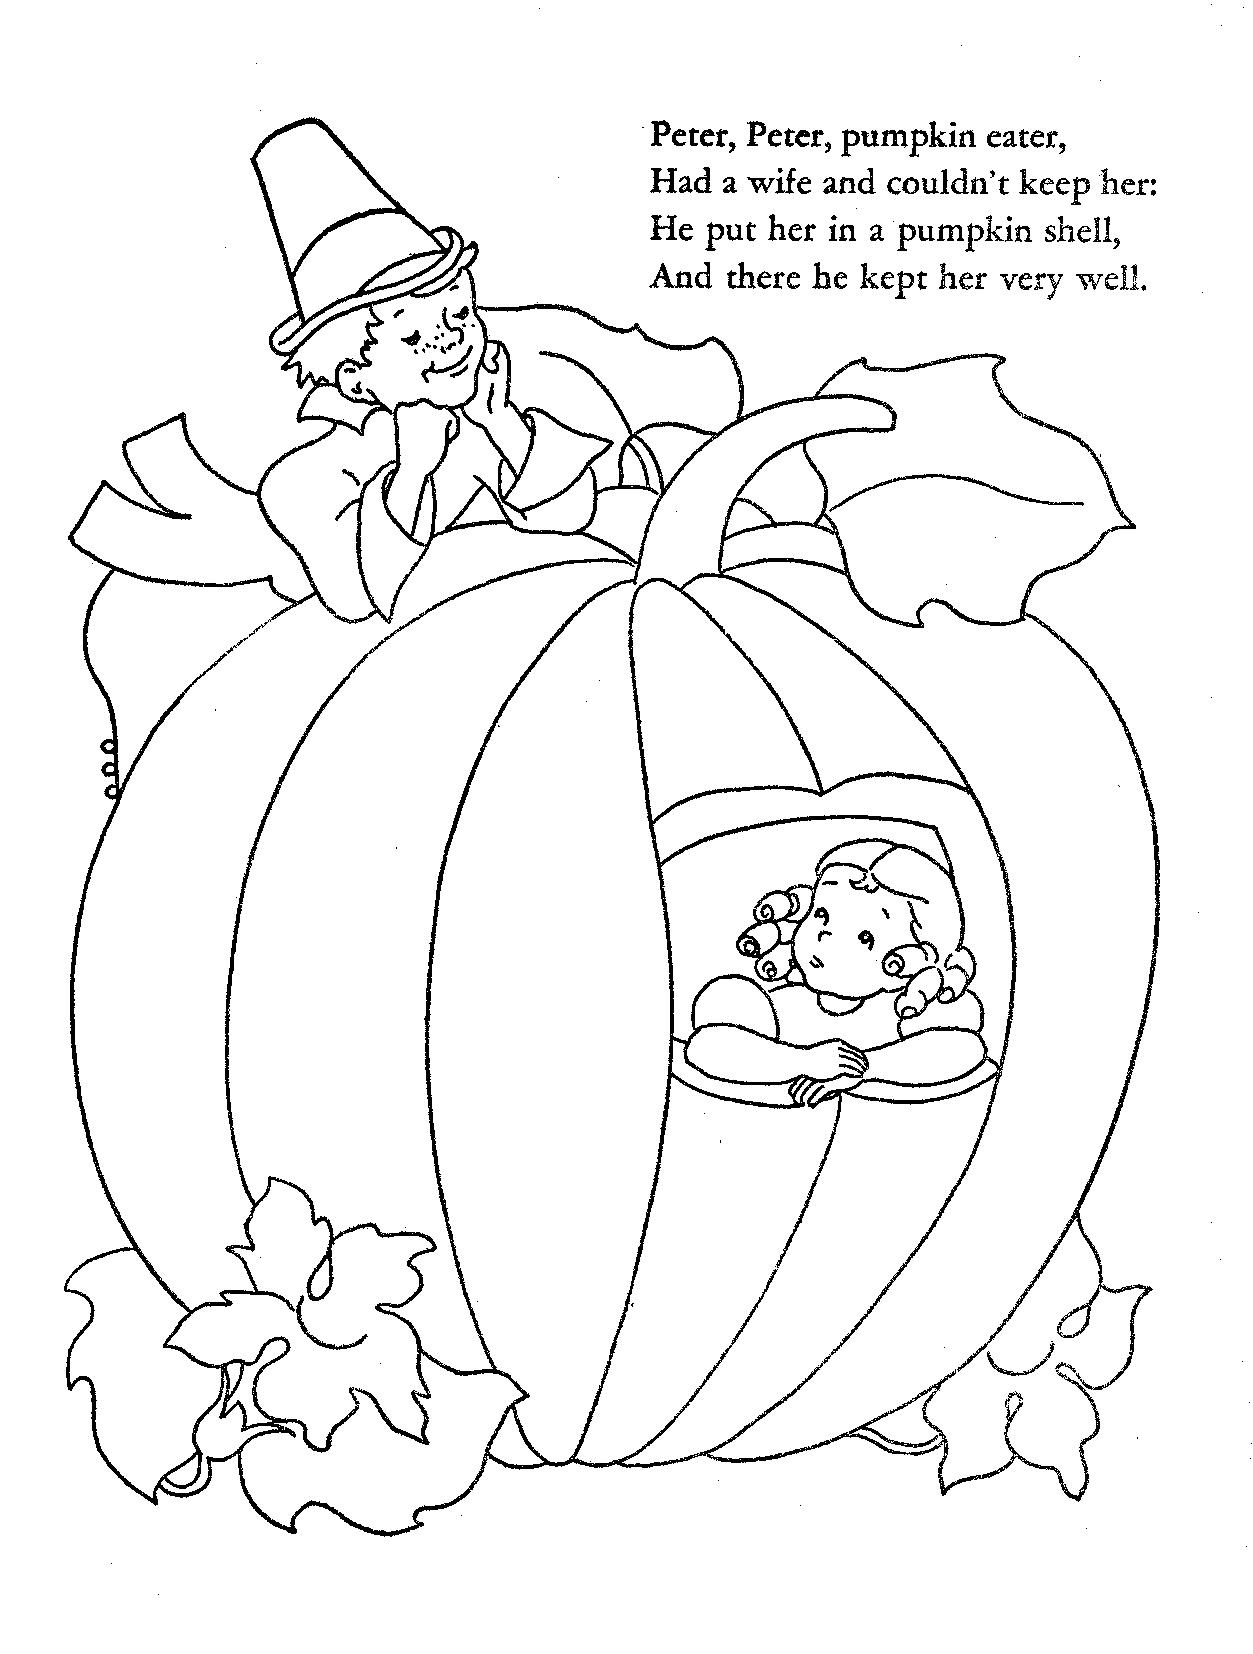 1253x1654 Security Peter Pumpkin Eater Coloring Page